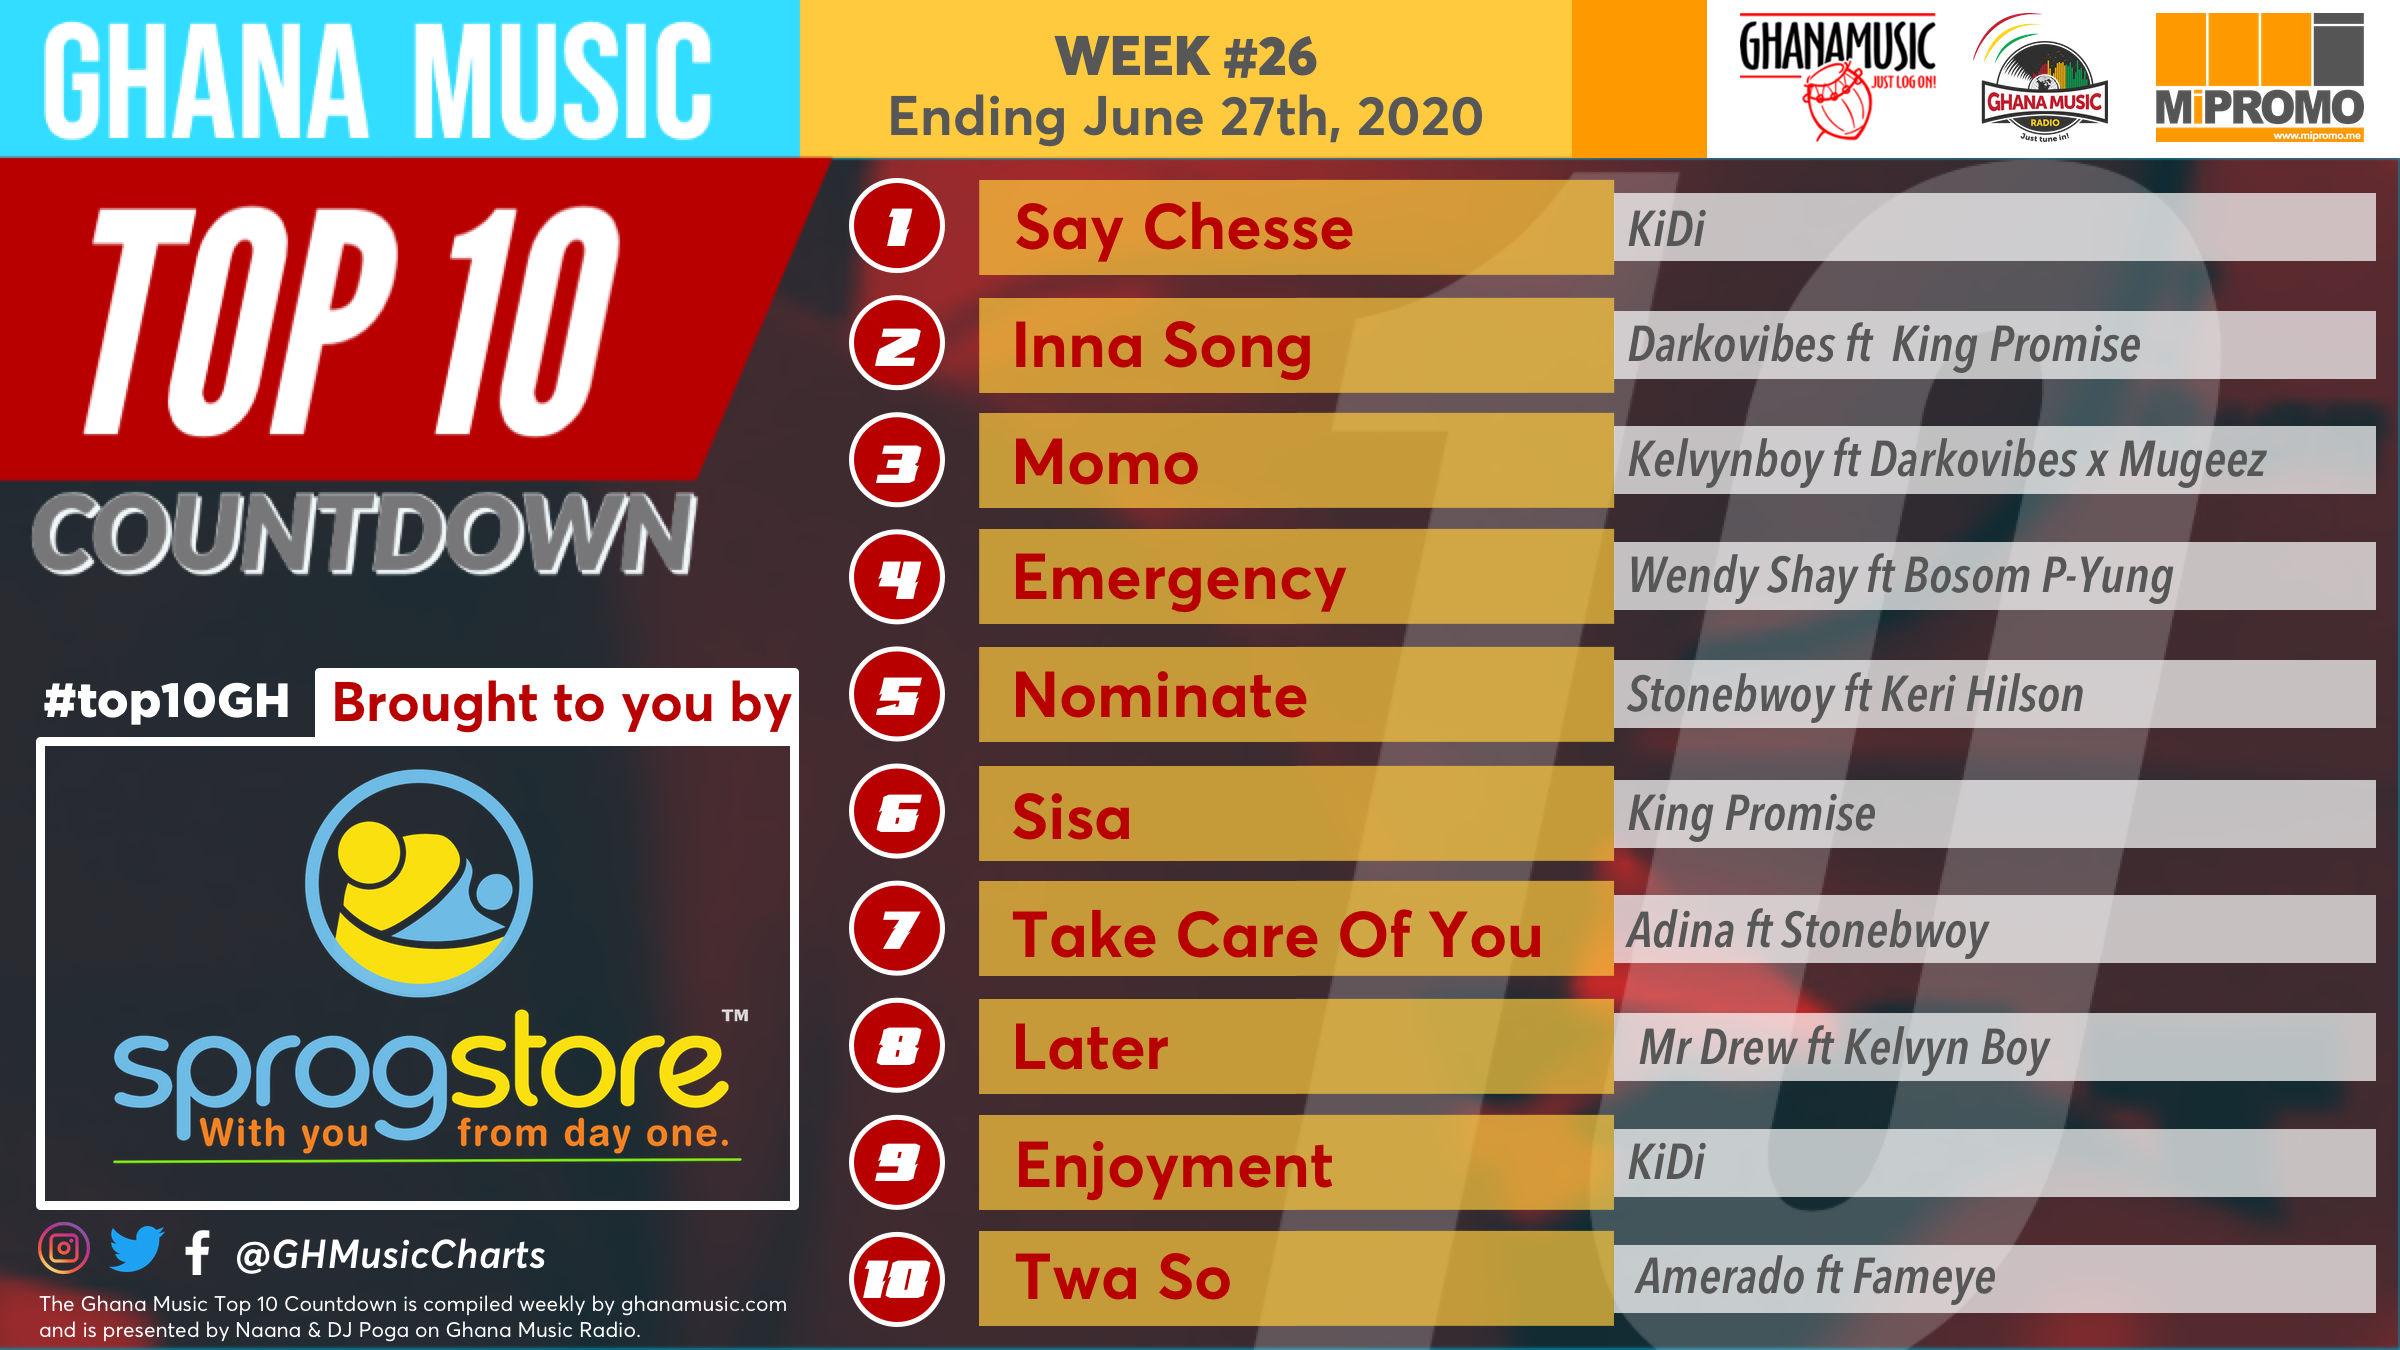 2020 Week 26: Ghana Music Top 10 Countdown